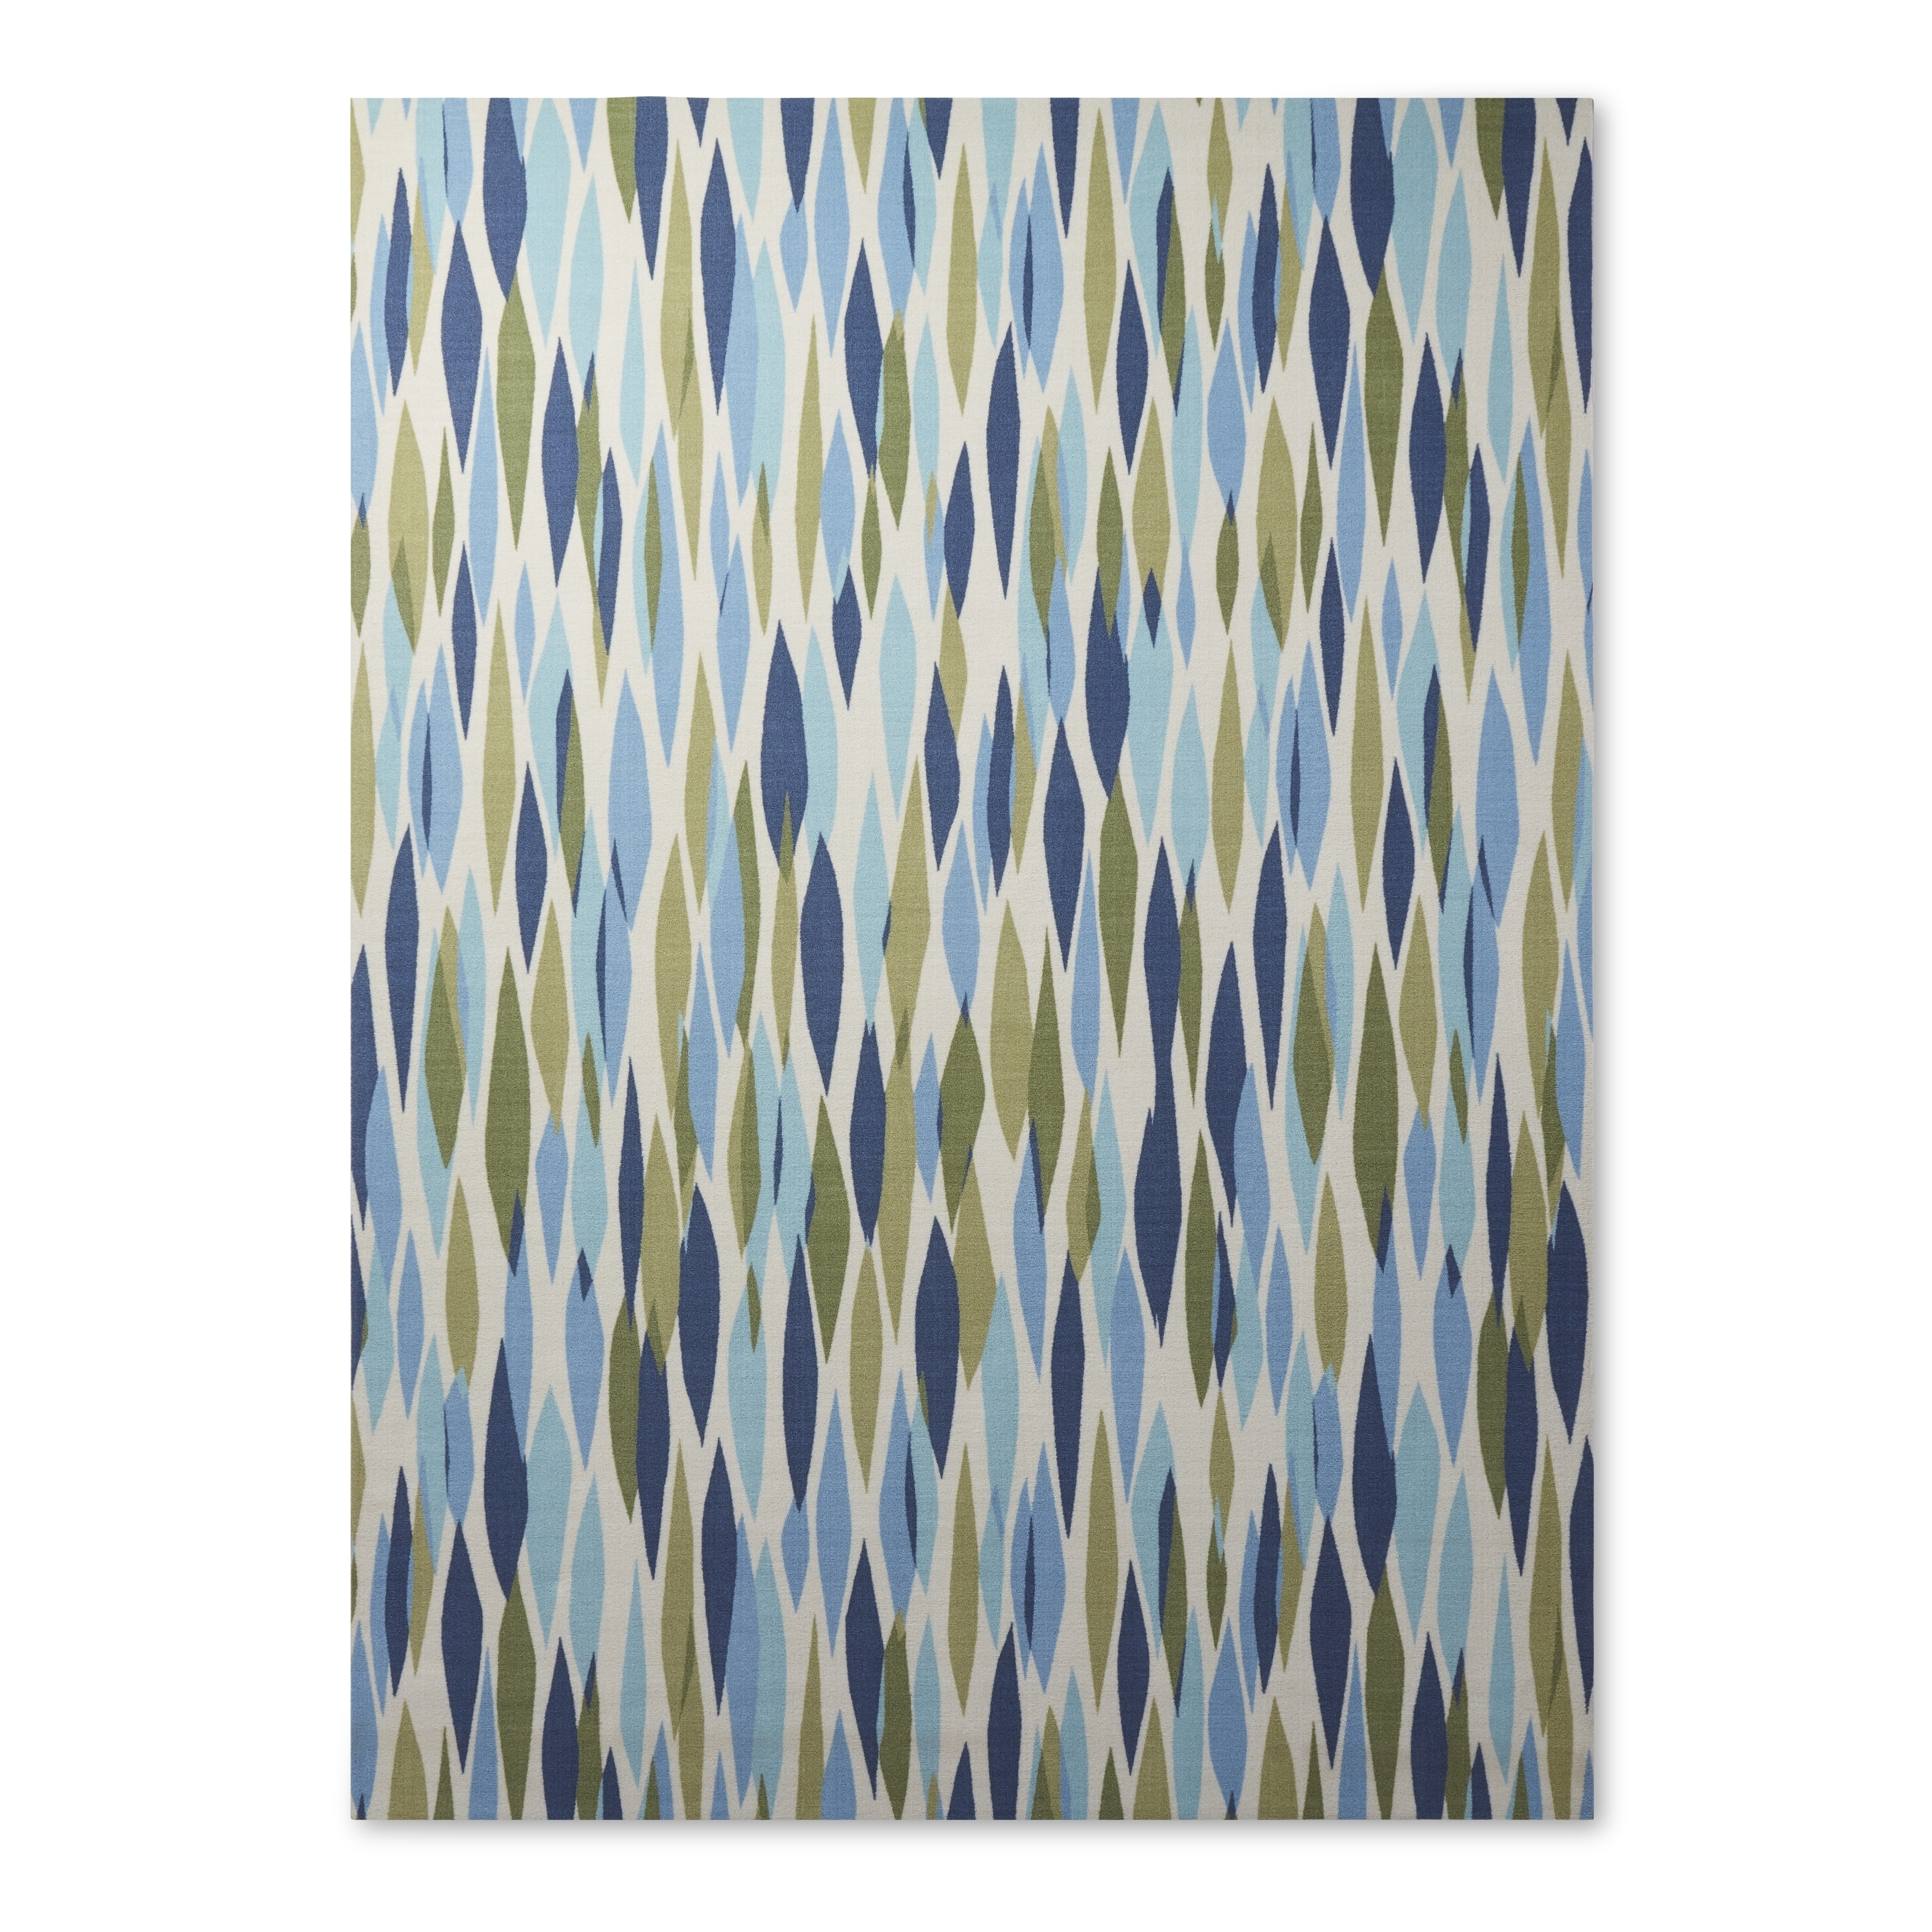 Top Waverly Sun N' Shade Bits & Pieces Seaglass Area Rug by Nourison  JN04